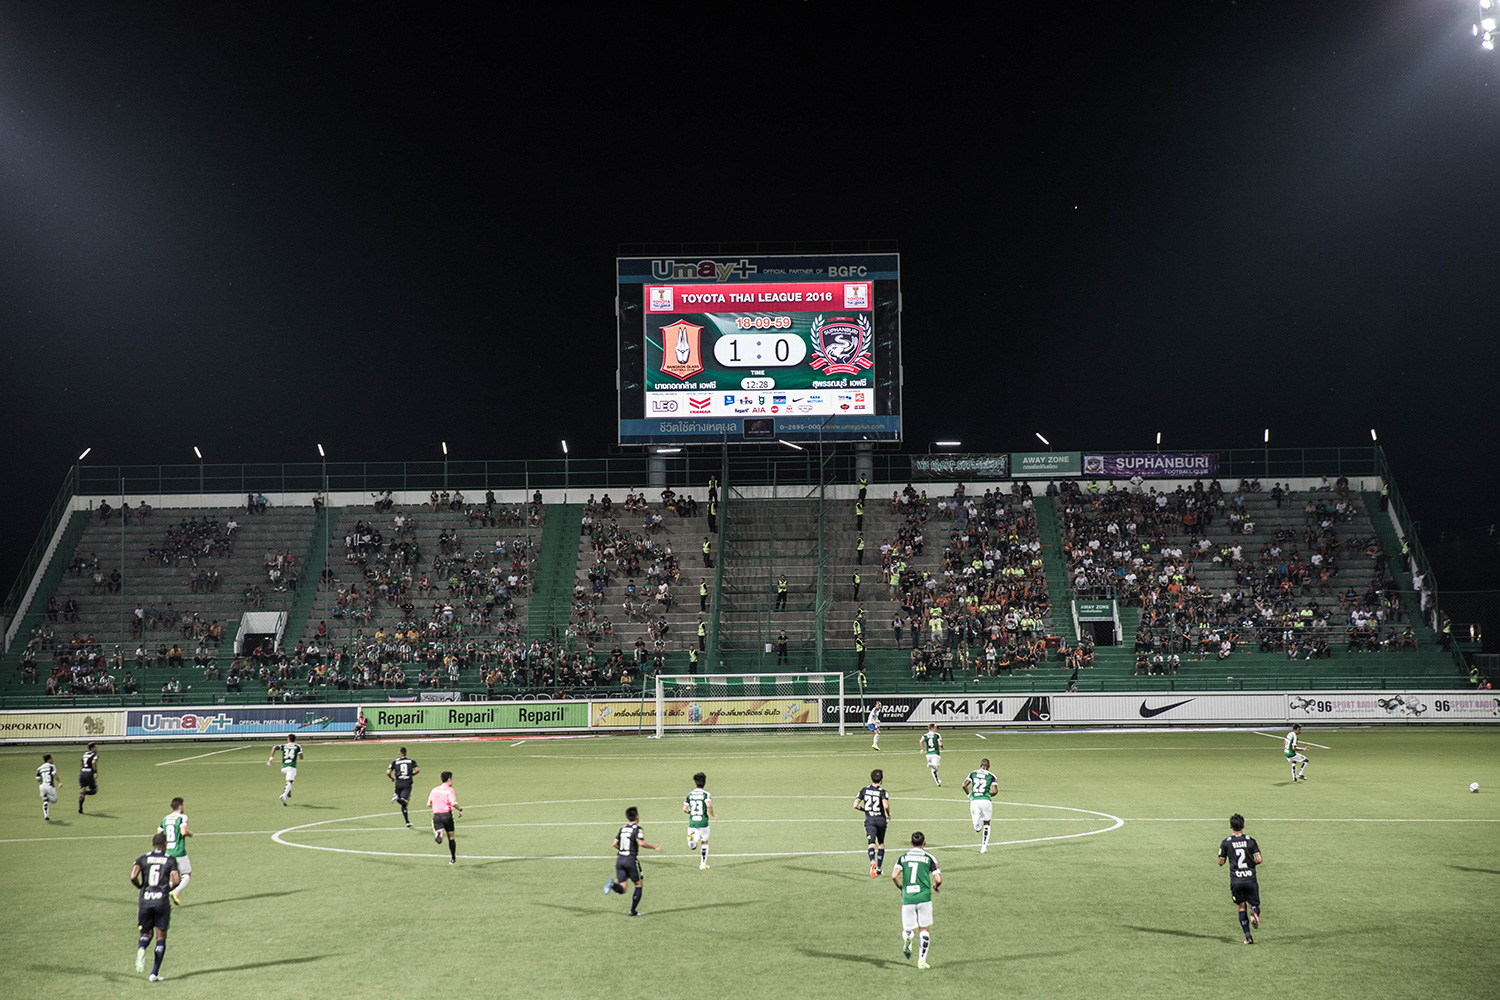 bangkokglass-vs-suphanburi-5